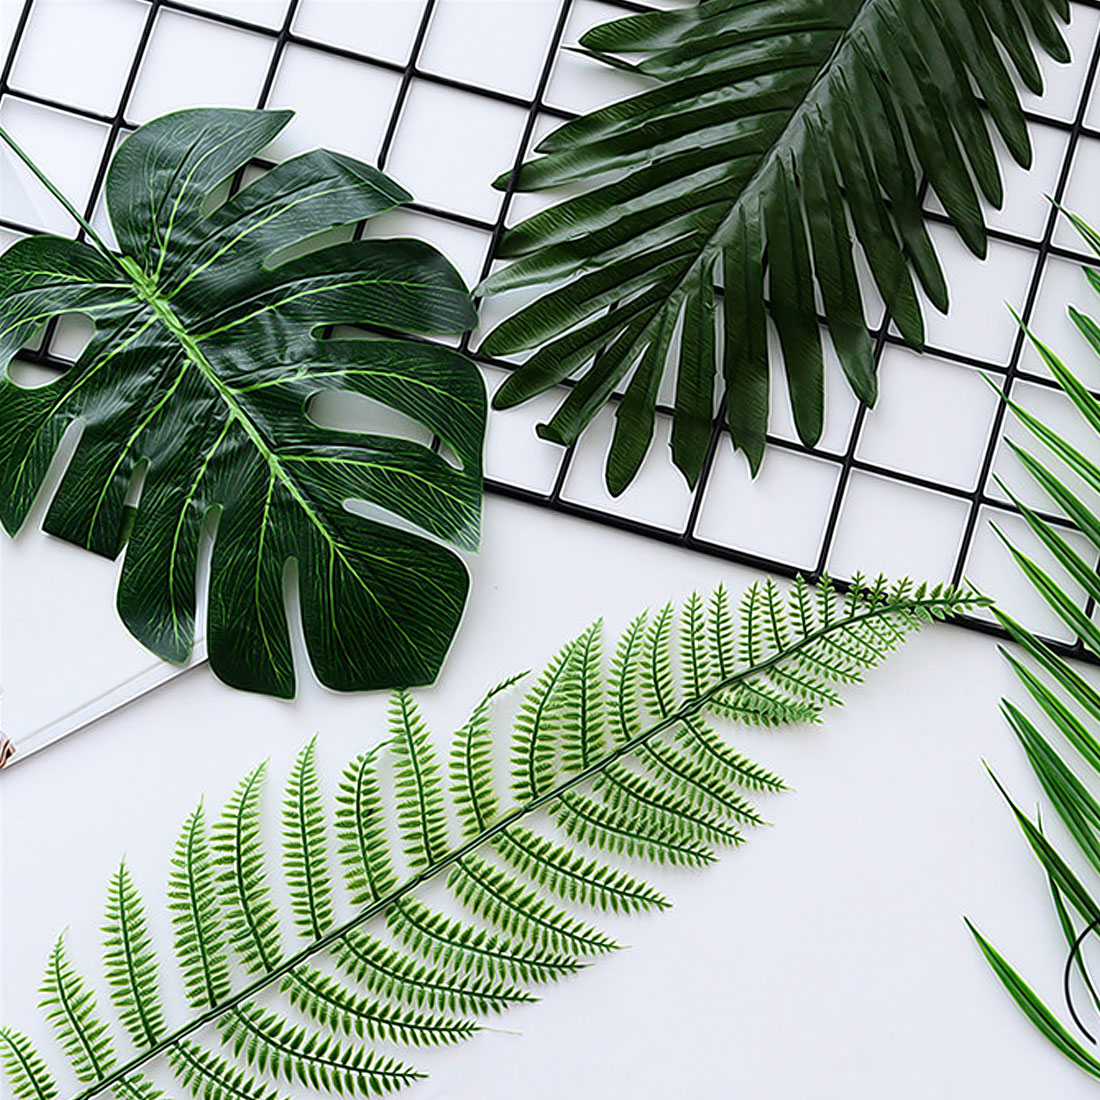 Home Decoration 5 10 pcs Large Artificial Fake Monstera Palm Tree Leaves Green Plastic Leaf for Home Decoration Accessories